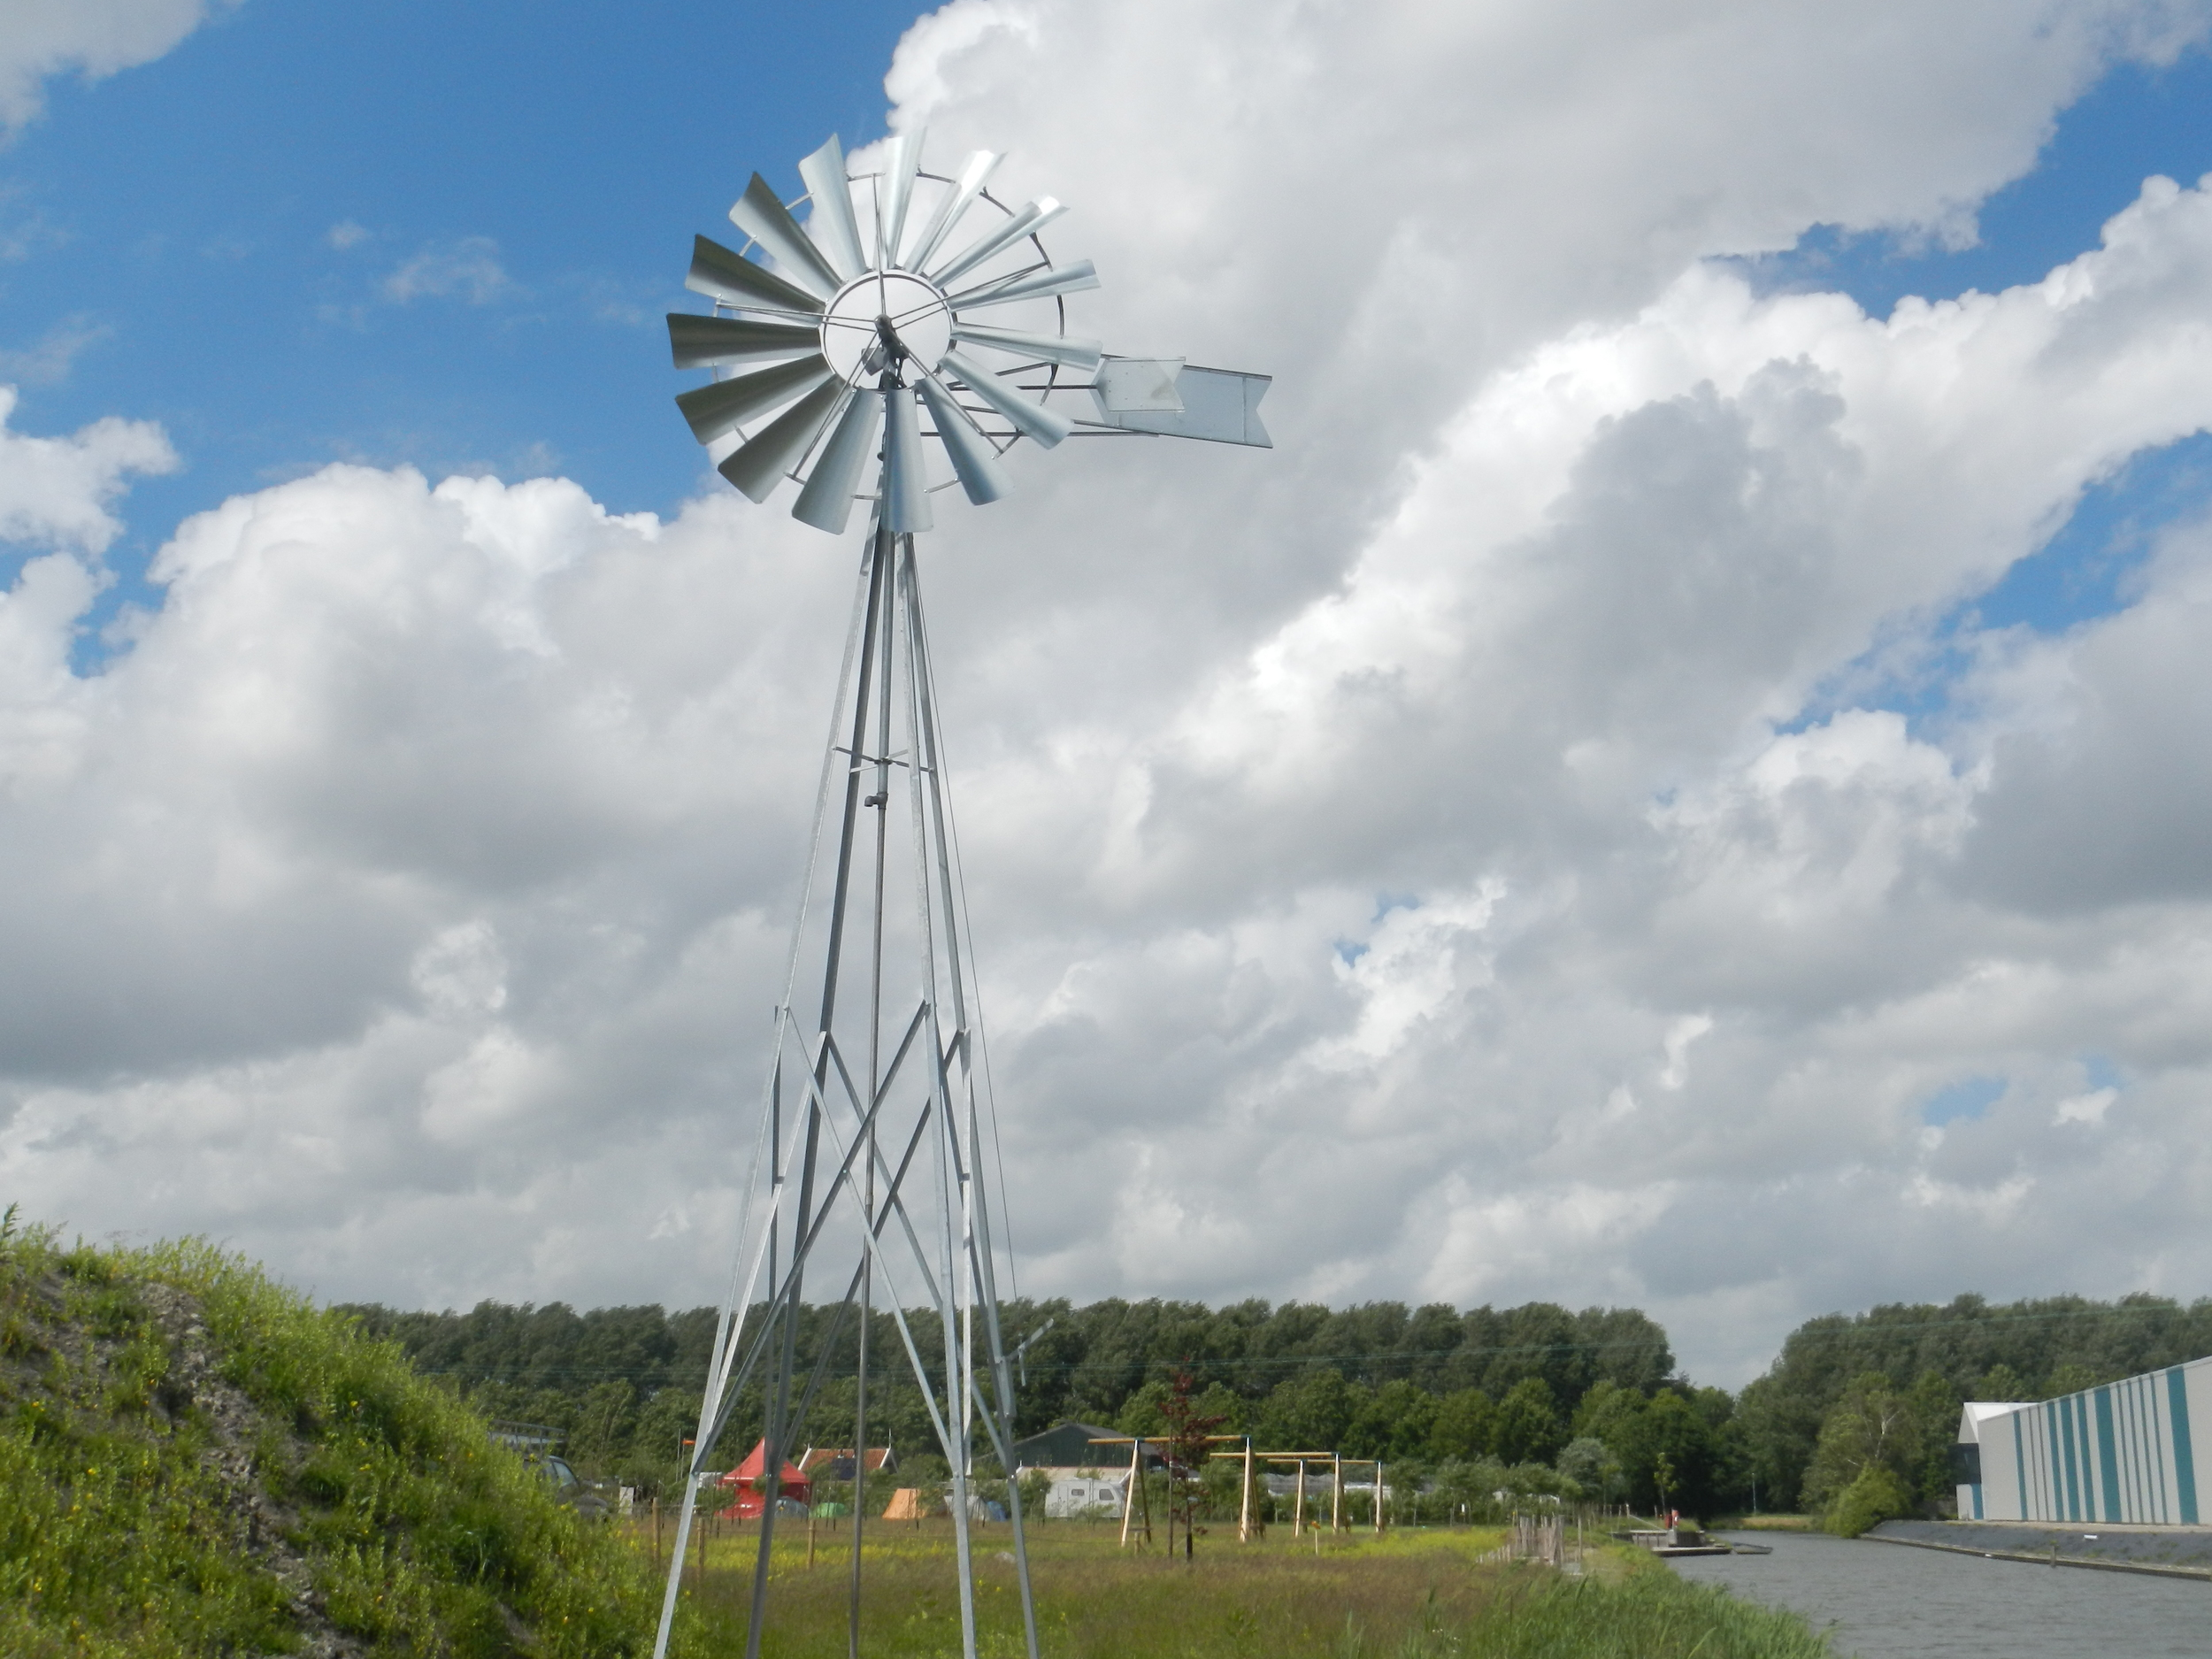 Wind turbine for water pumping.